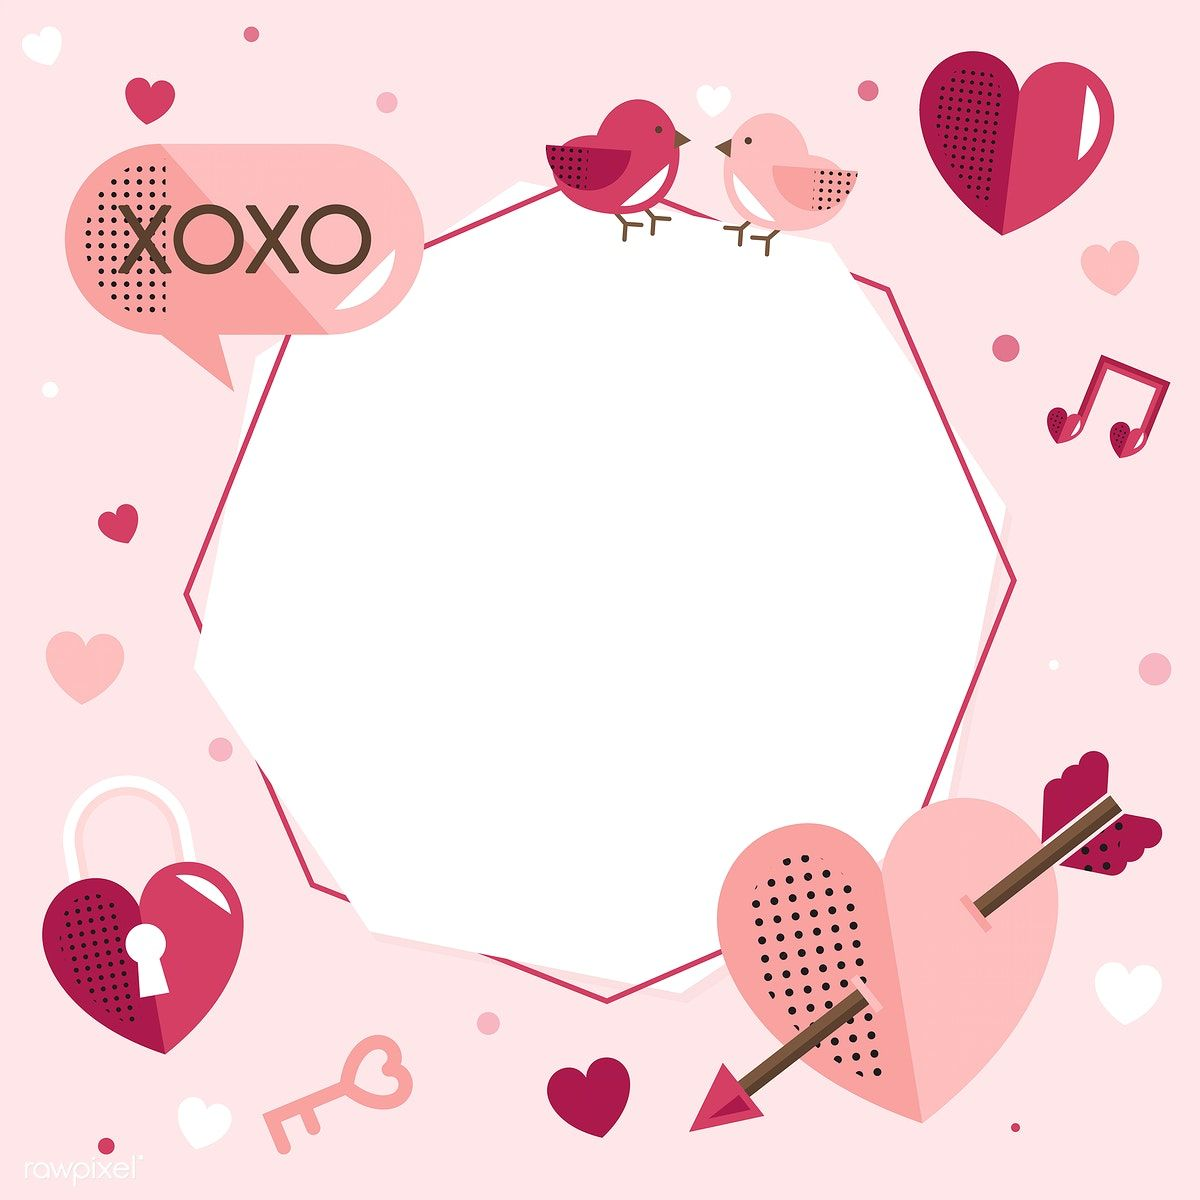 Valentine's Day blank background vector   free image by rawpixel.com / sasi